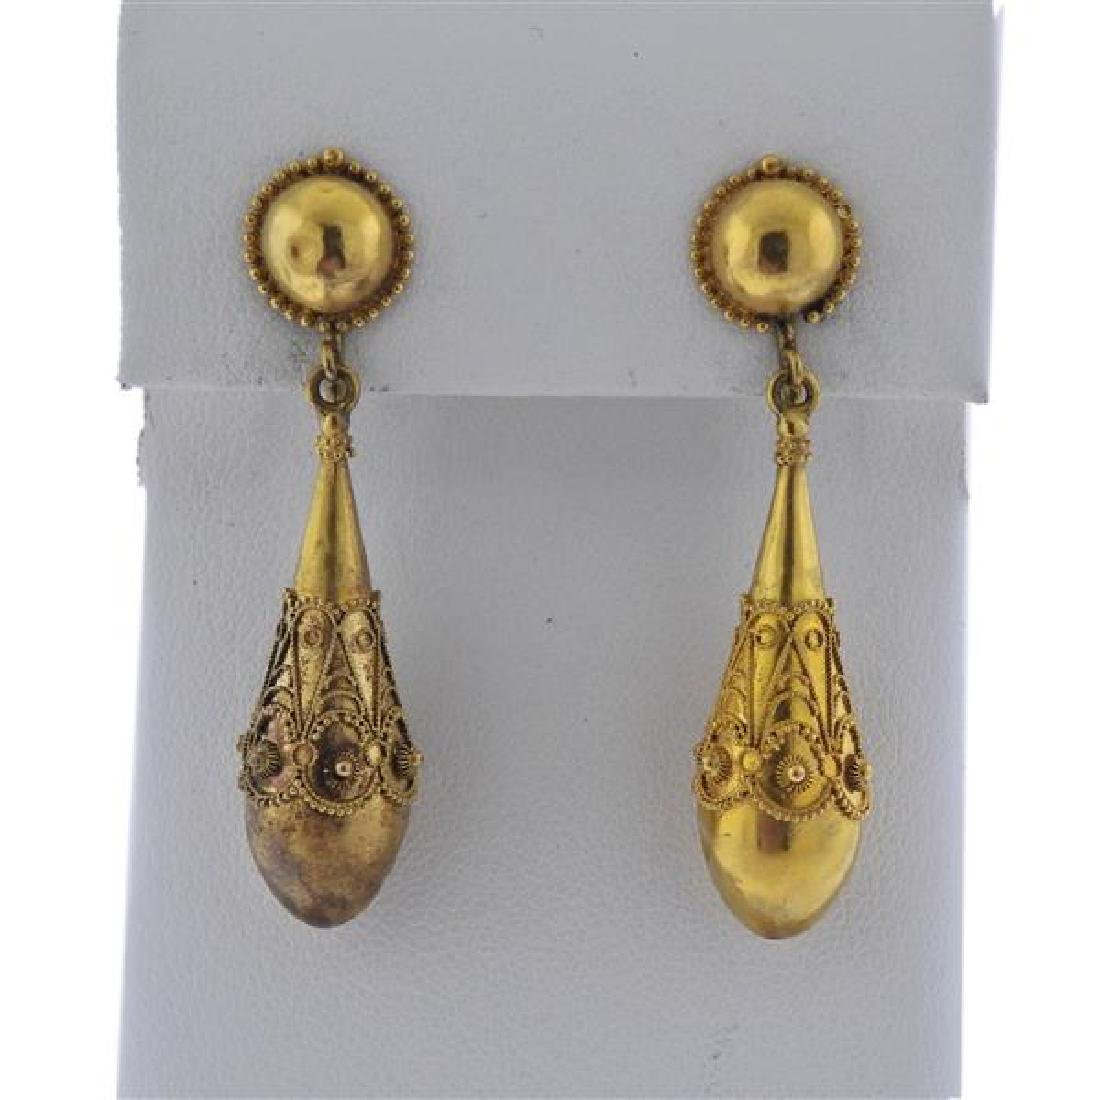 Antique 22K Gold Drop Earrings